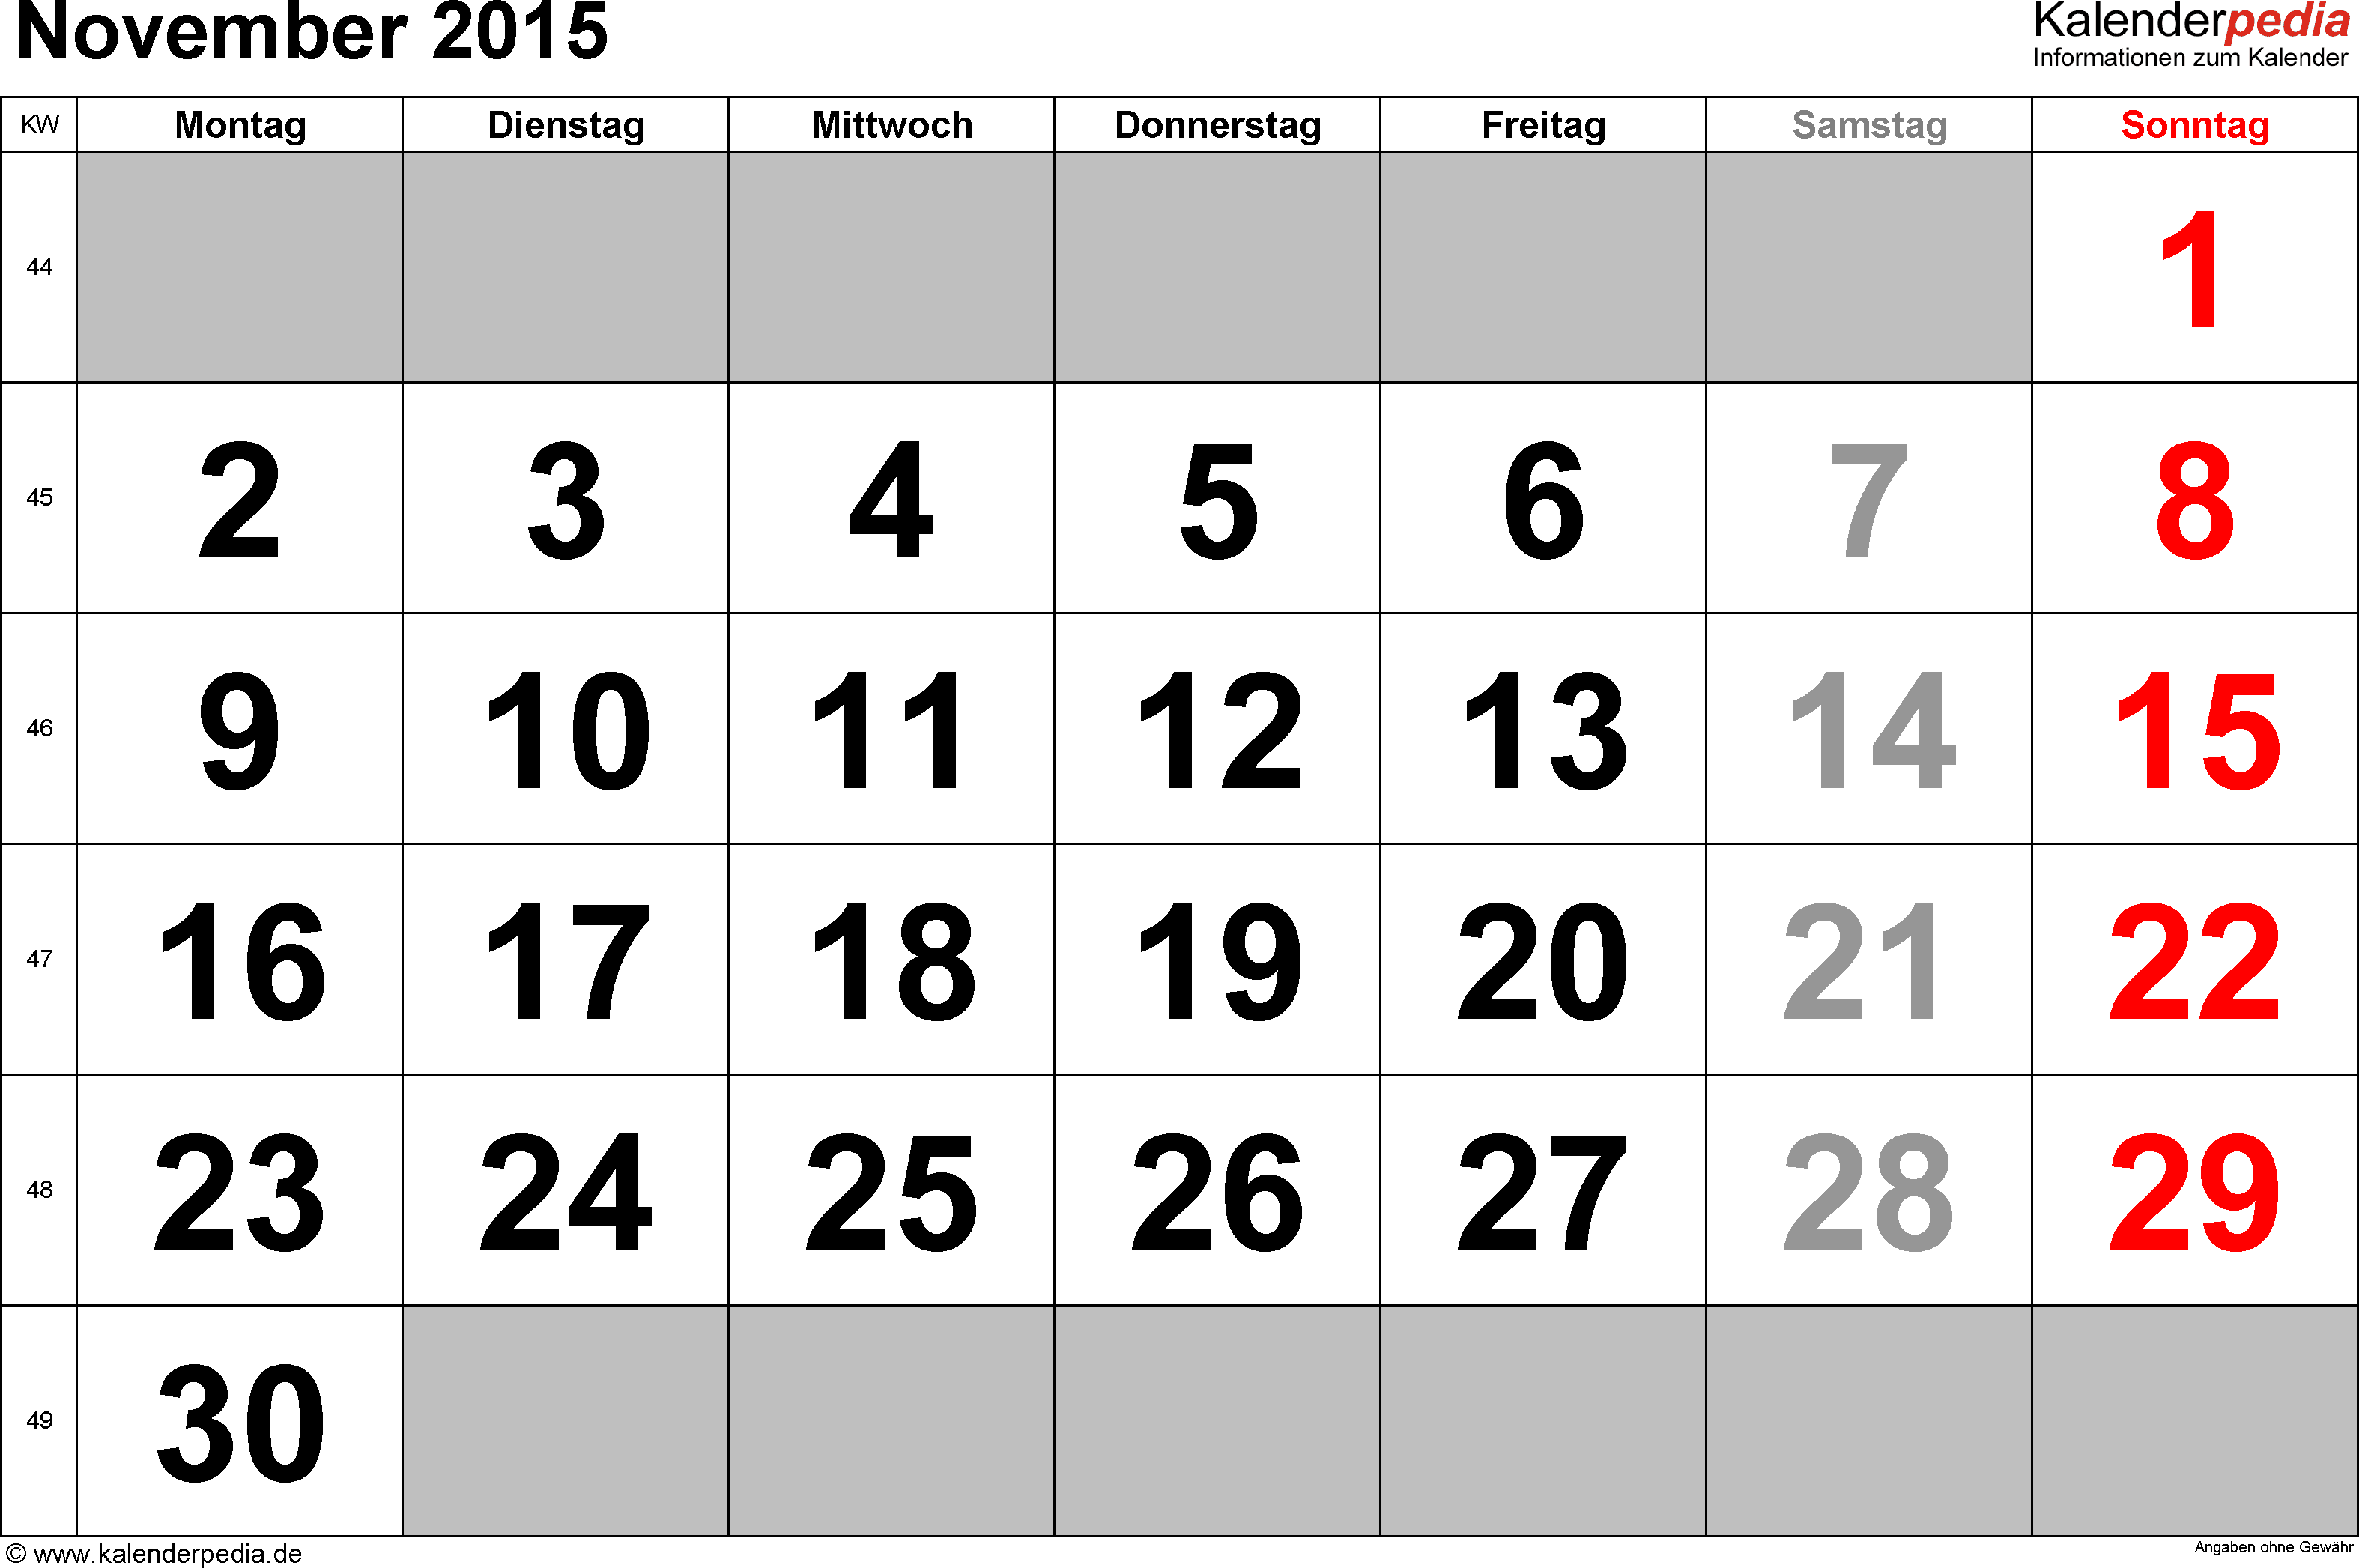 Kalender November 2015 im Querformat, grosse Ziffern